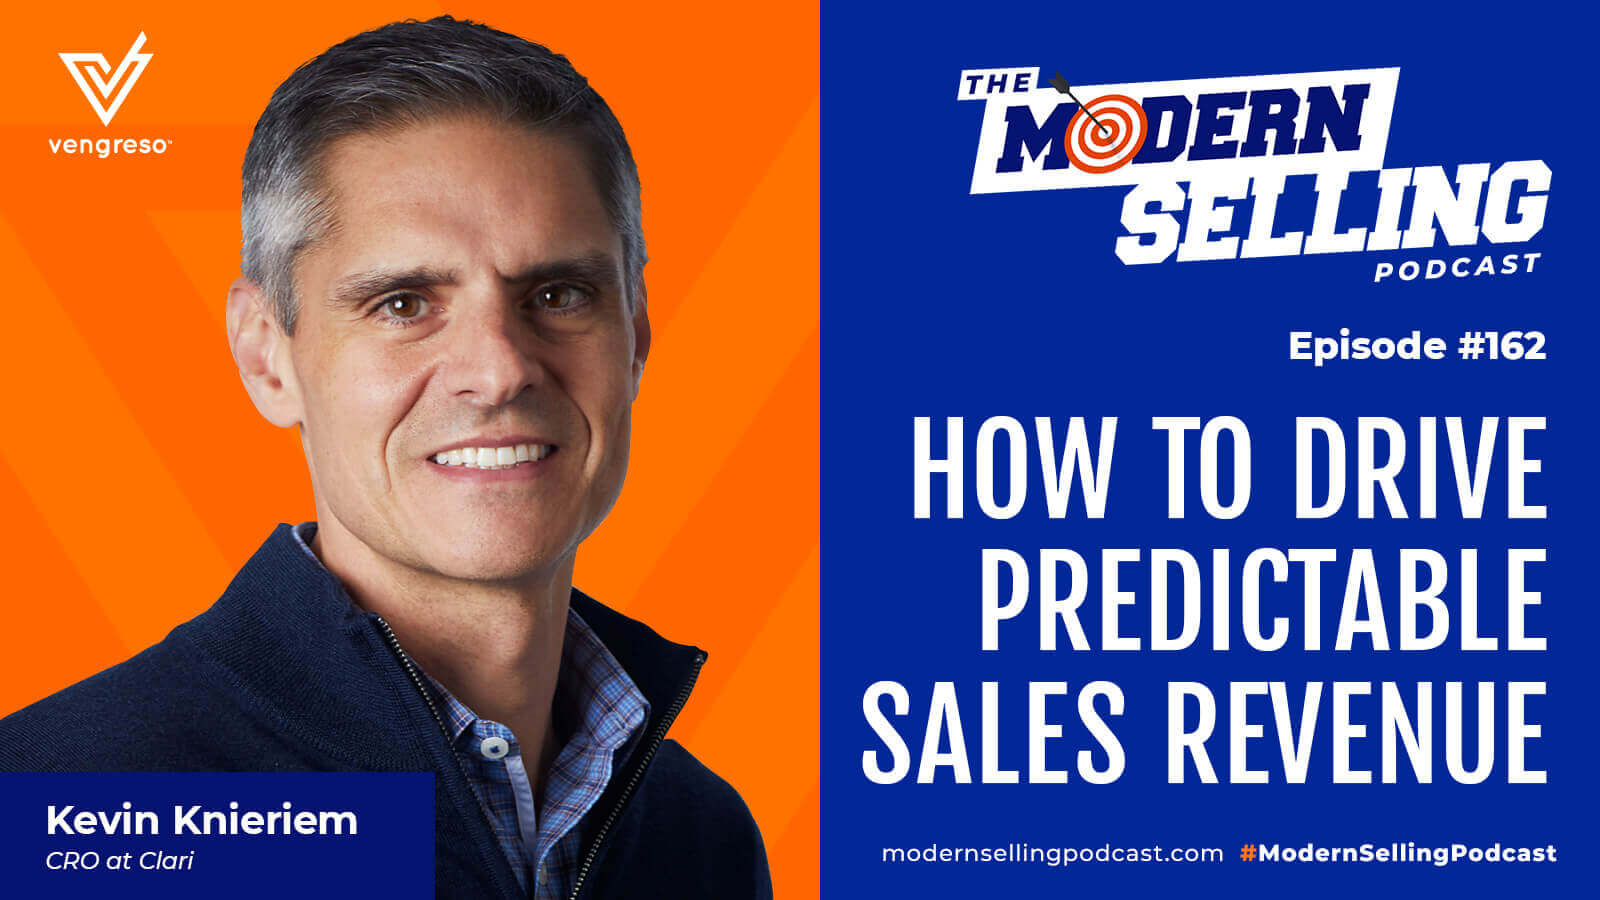 How to Drive Predictable Sales Revenue